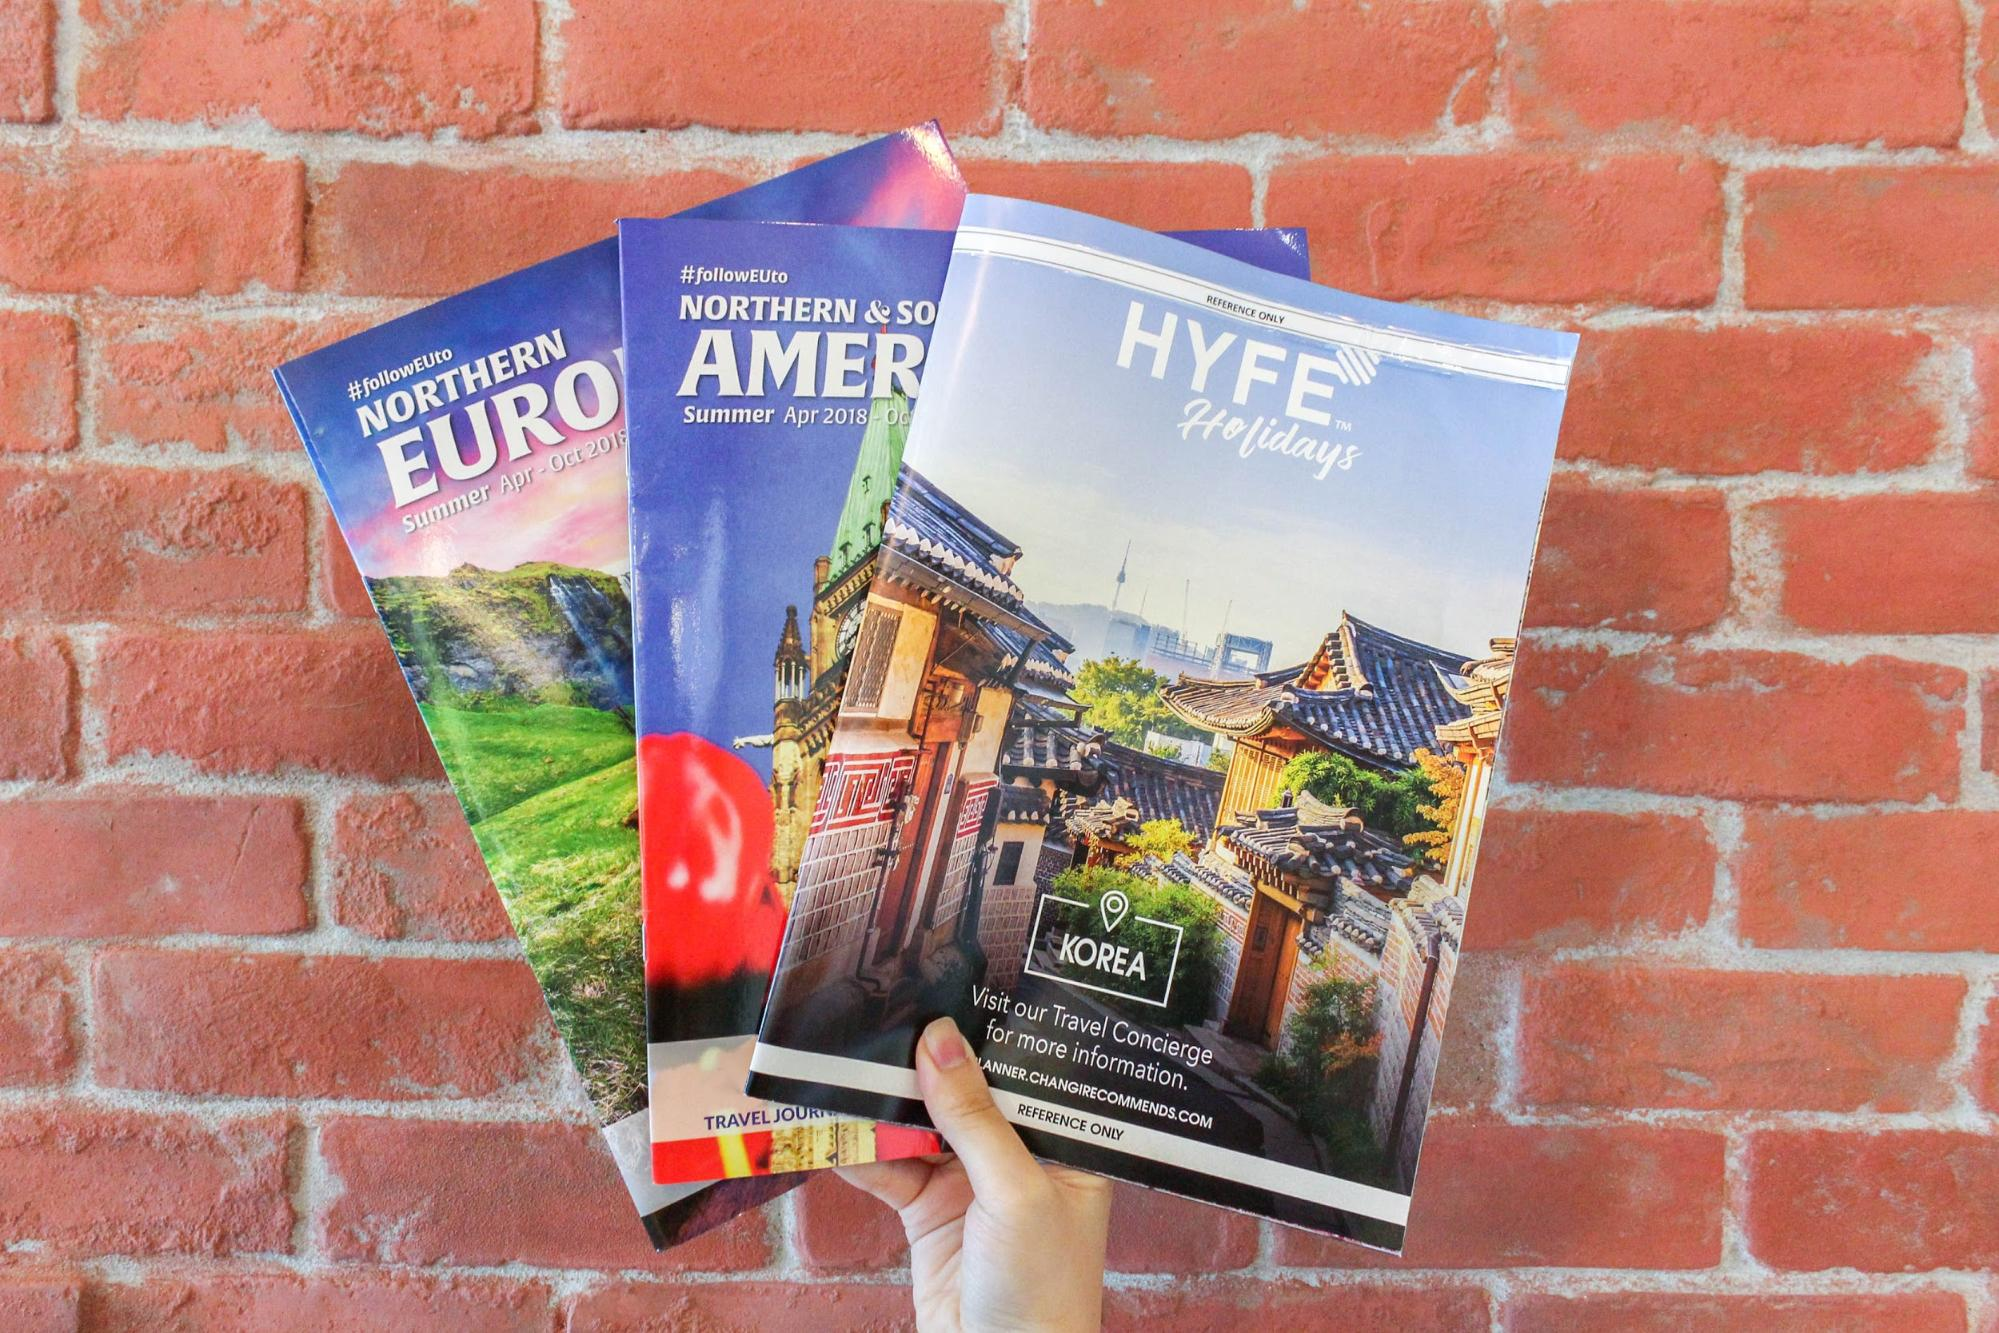 Travel brochures at HyfeCafe